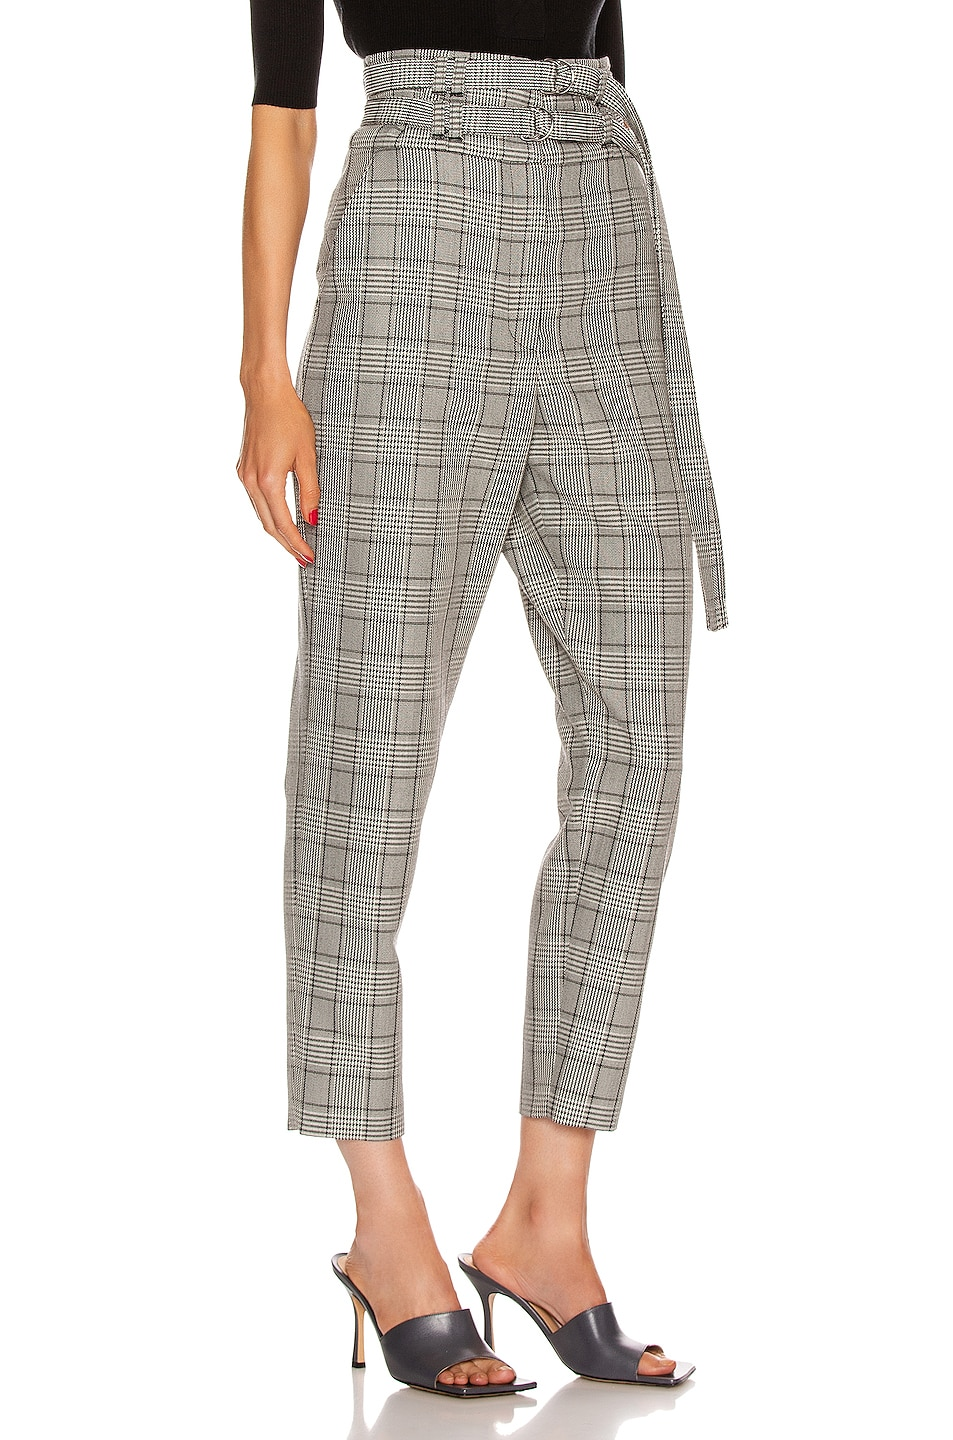 Image 2 of Proenza Schouler Belted Pant in Black & Off White Glen Plaid